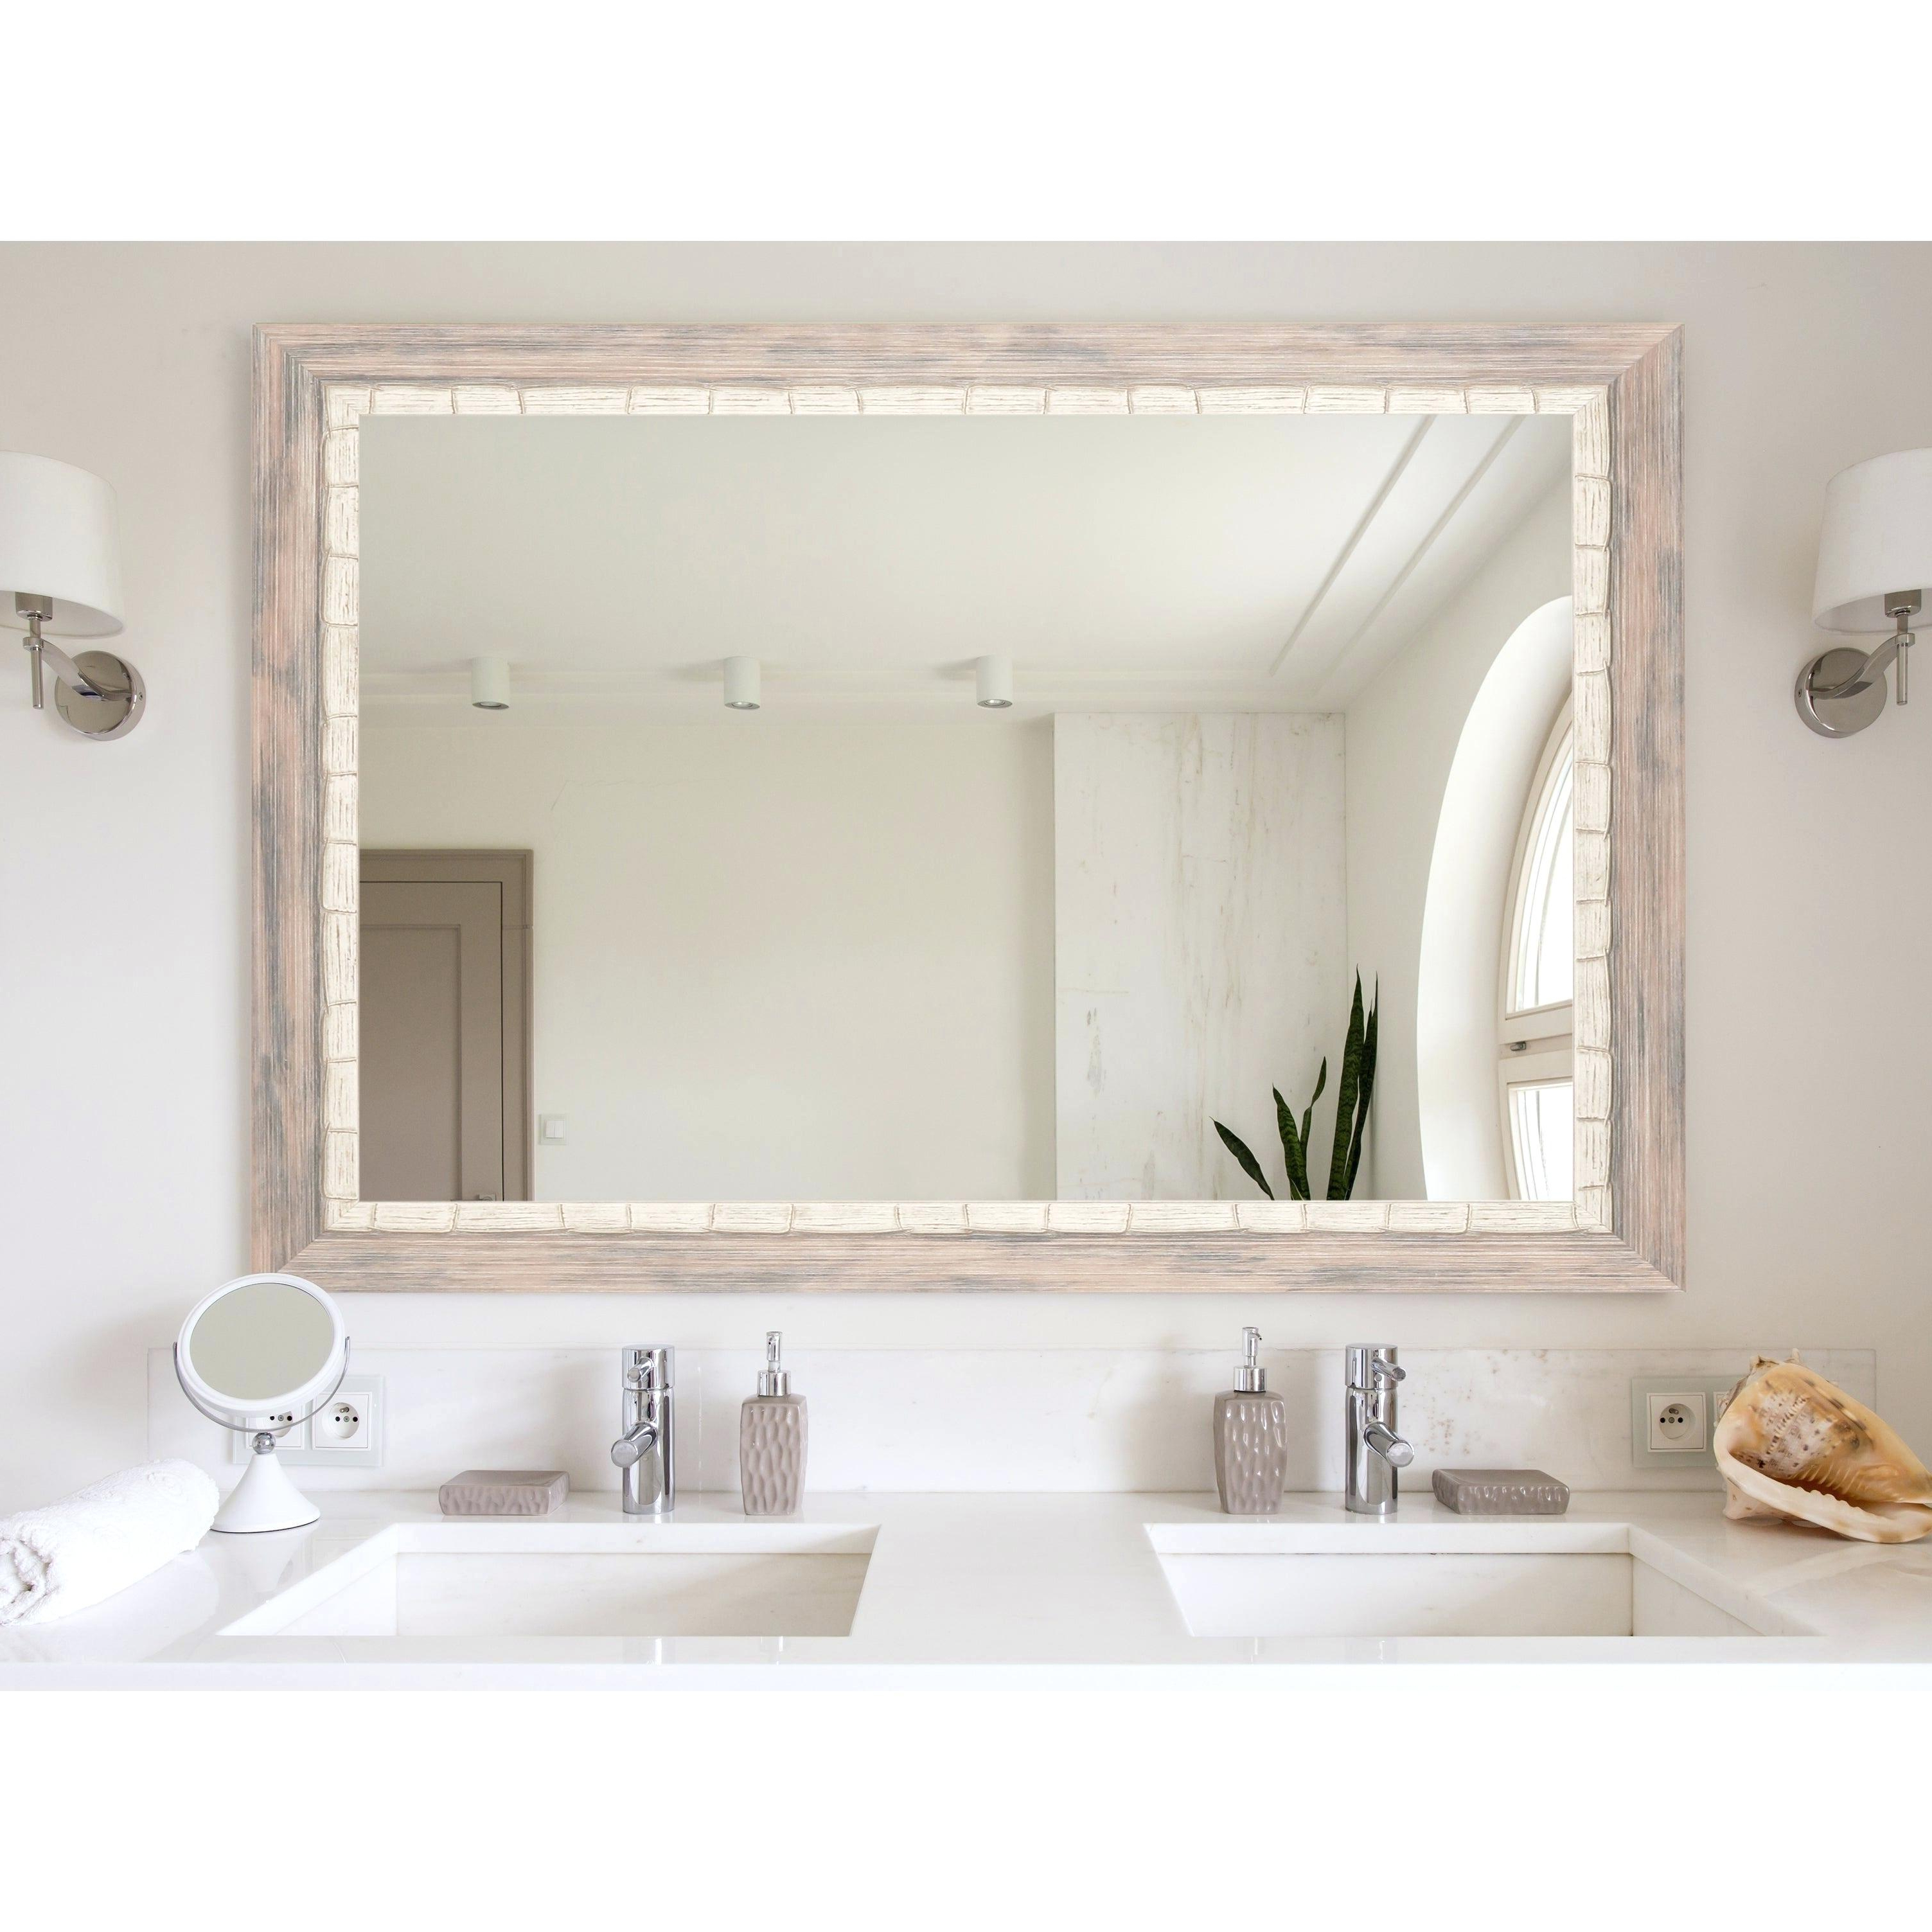 Coastal Wall Mirrors With Regard To Current Coastal Wall Mirrors – Rollascriptingstraining (View 3 of 20)